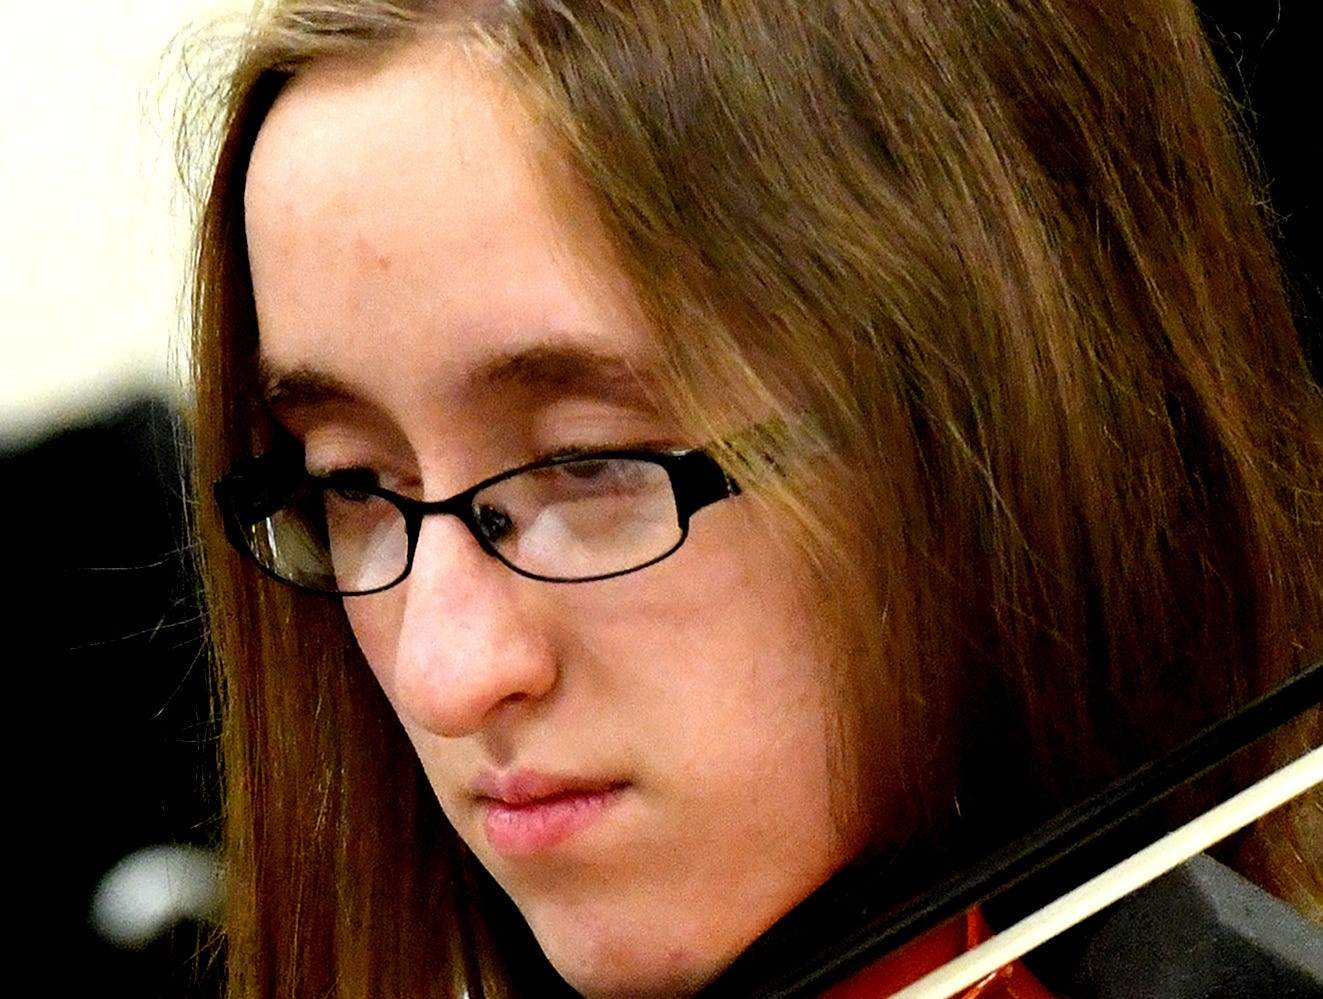 """Red Lion High School orchestra members rehearse """"Obsidian Rainbow"""" at the school Friday, March 1, 2019. The piece was written by Red Lion graduate and New York composer Derek Cooper. He is premiering the piece via the string orchestra on Wednesday, March 6. Cooper will be at the school working with the orchestra beforehand. Bill Kalina photo"""